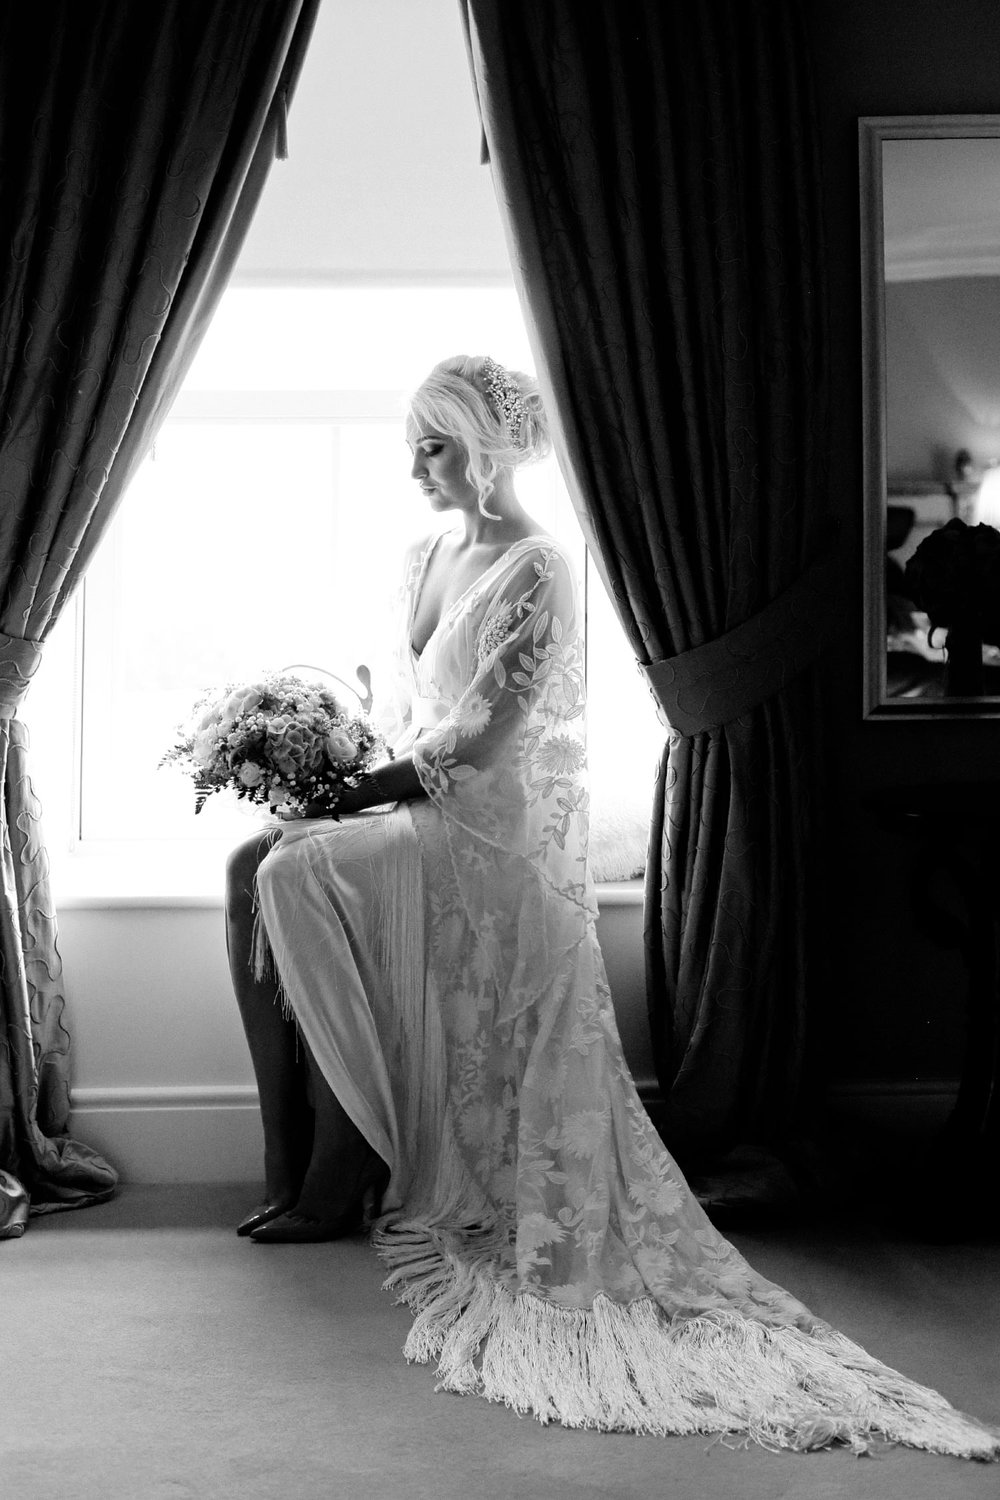 Bride photo Ballymagarvey Village Meath Ireland